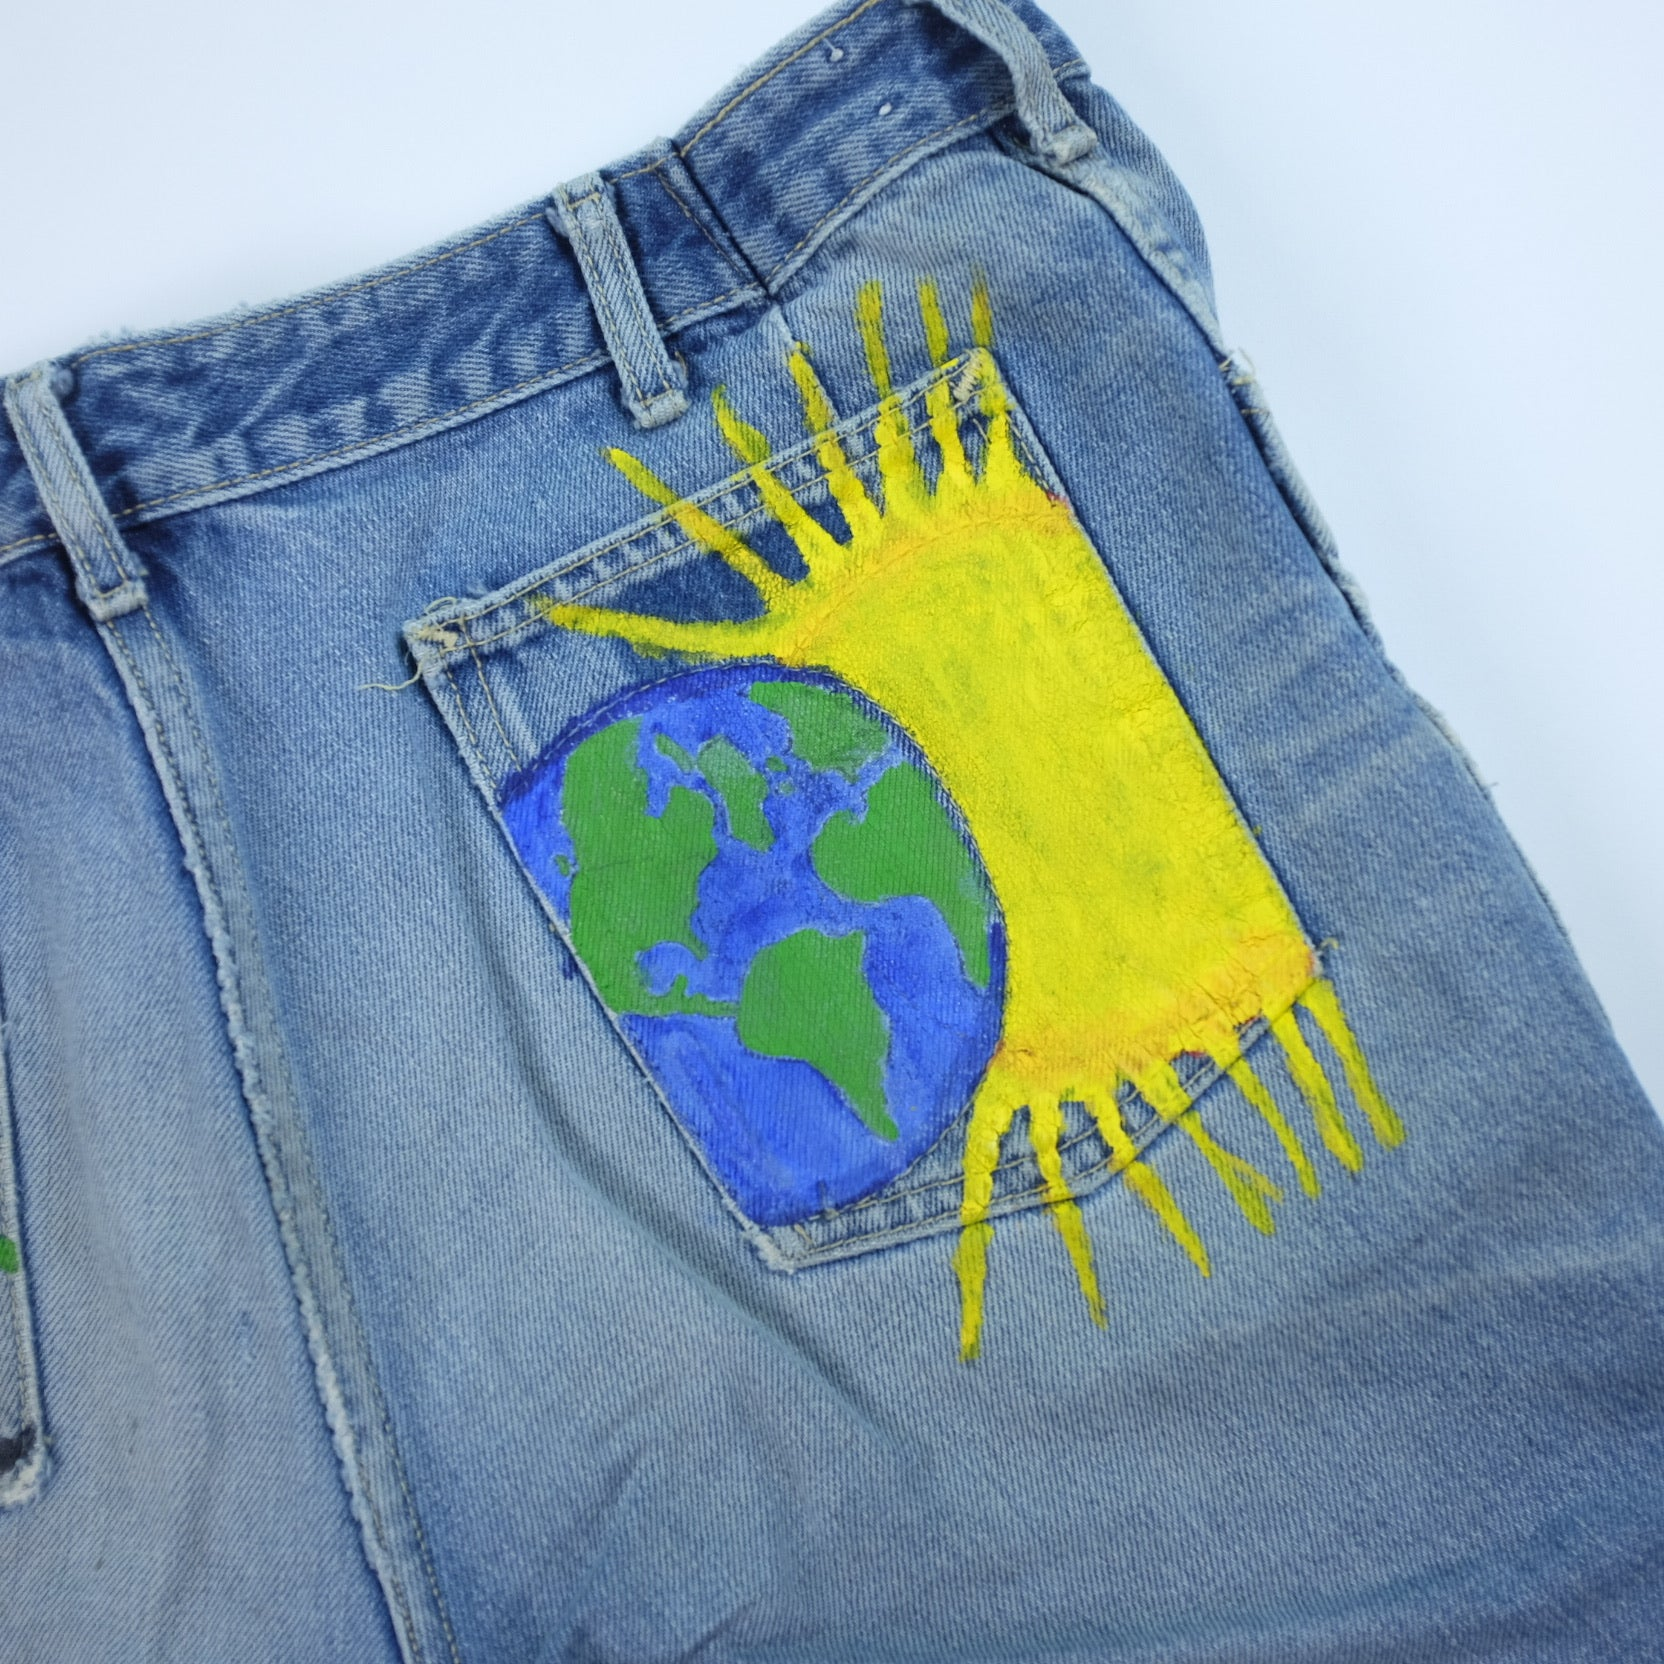 Vintage Hippie Custom Cutoff Denim Jean Shorts - 33""